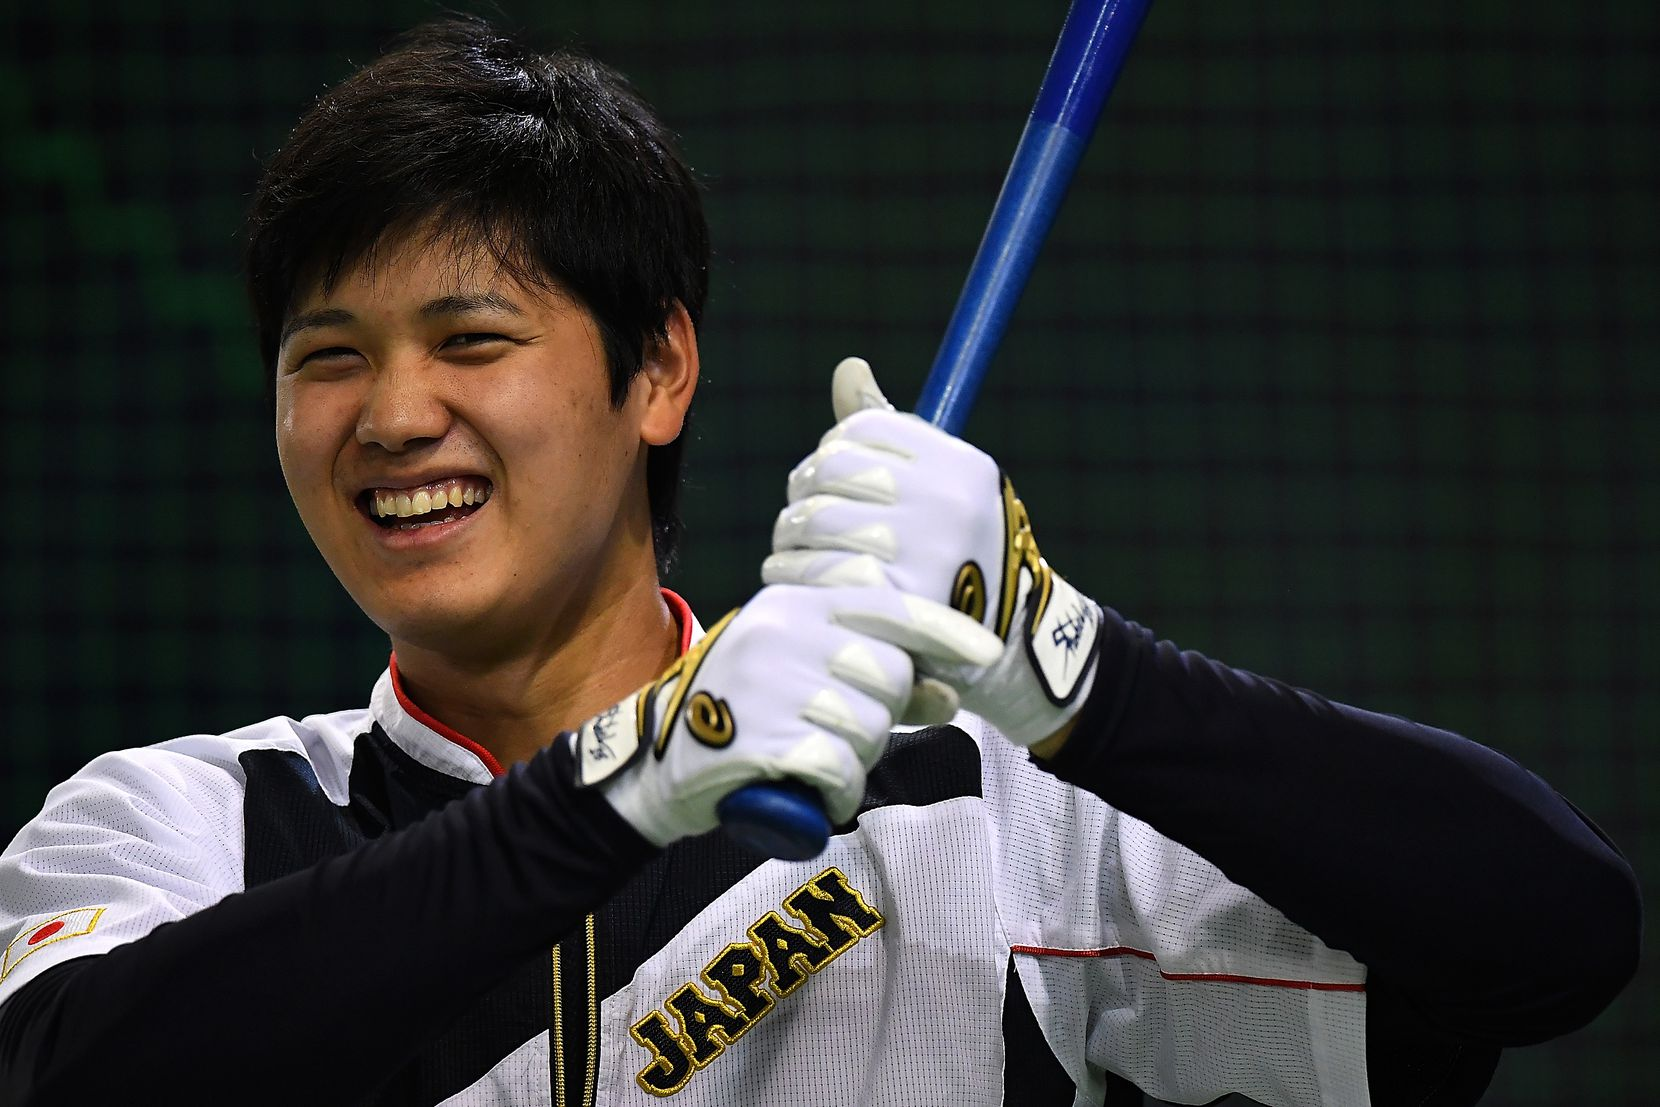 TOKYO, JAPAN - NOVEMBER 12:  Shohei Ohtani #16 of Japan is seen during the warm-up ahead of the international friendly match between Japan and Netherlands at the Tokyo Dome on November 12, 2016 in Tokyo, Japan.  (Photo by Masterpress/Getty Images)